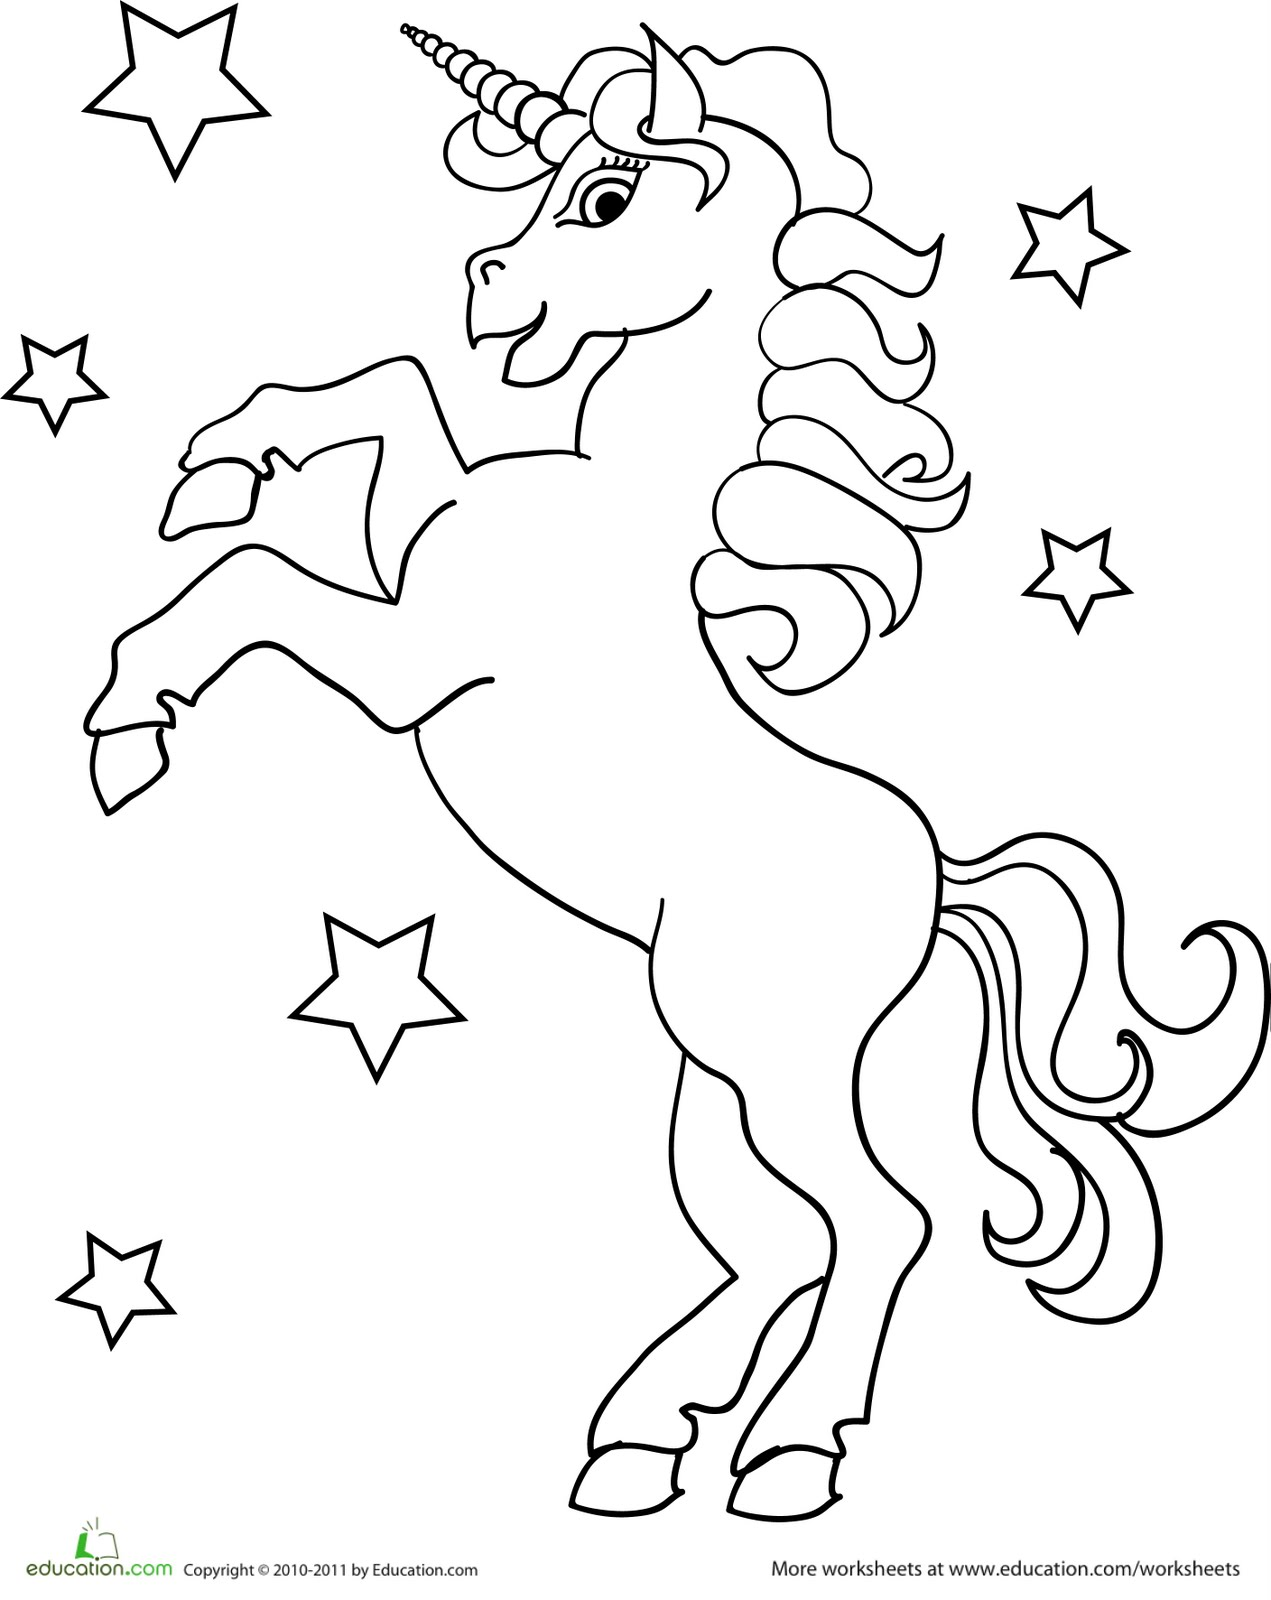 Coloring Pages For Unicorns : Free unicorn maze coloring pages